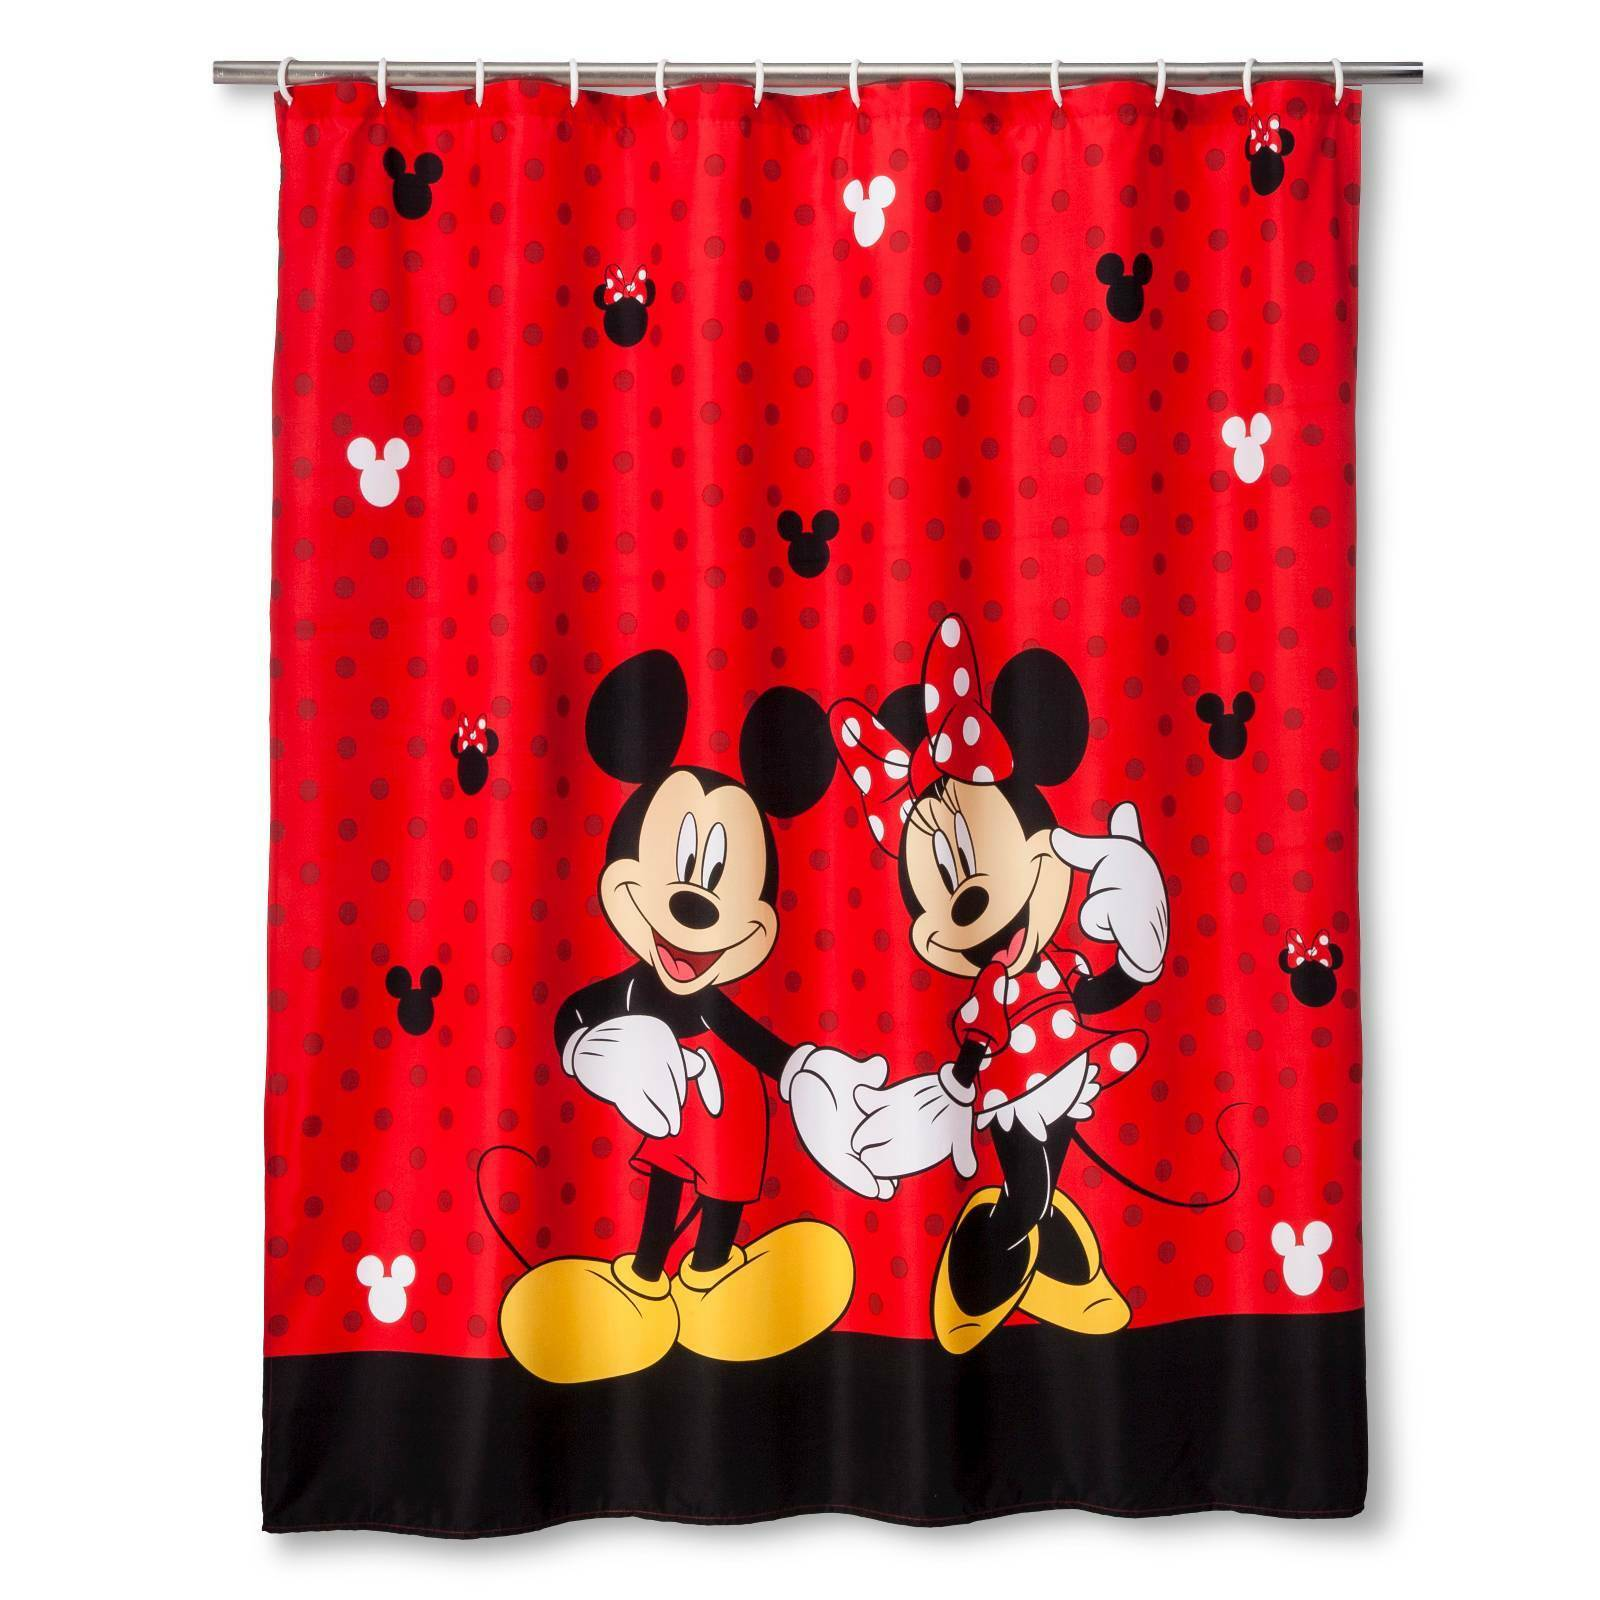 Disney Mickey And Minnie 70 X 72 Fabric Shower Curtain For Sale